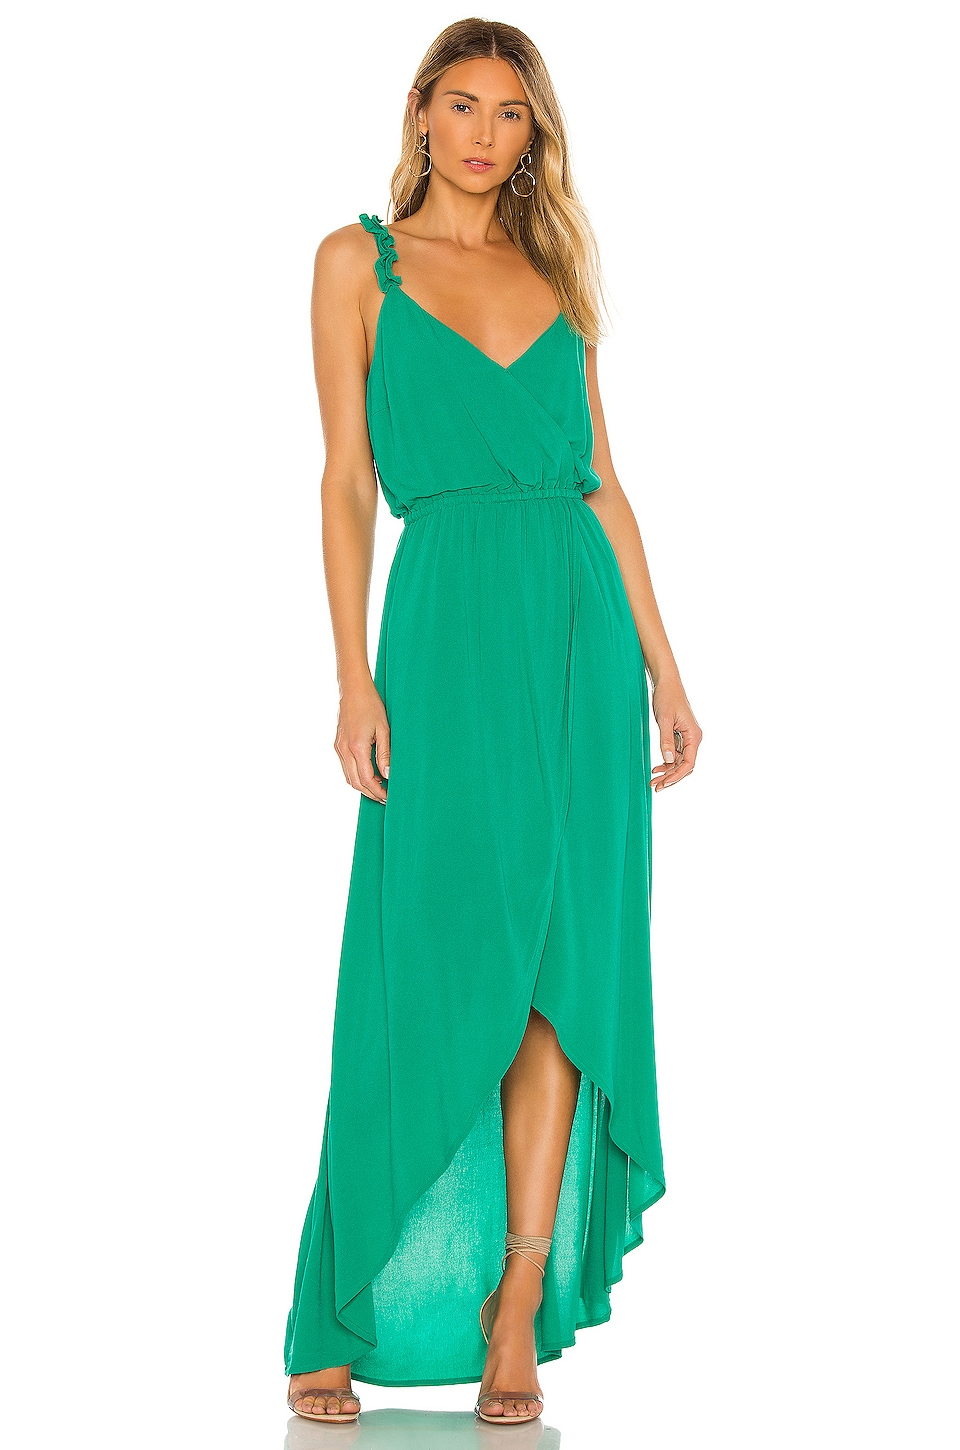 JACK by BB Dakota Ruffle & Cut Midi Dress             BB Dakota                                                                                                       CA$ 122.67 3